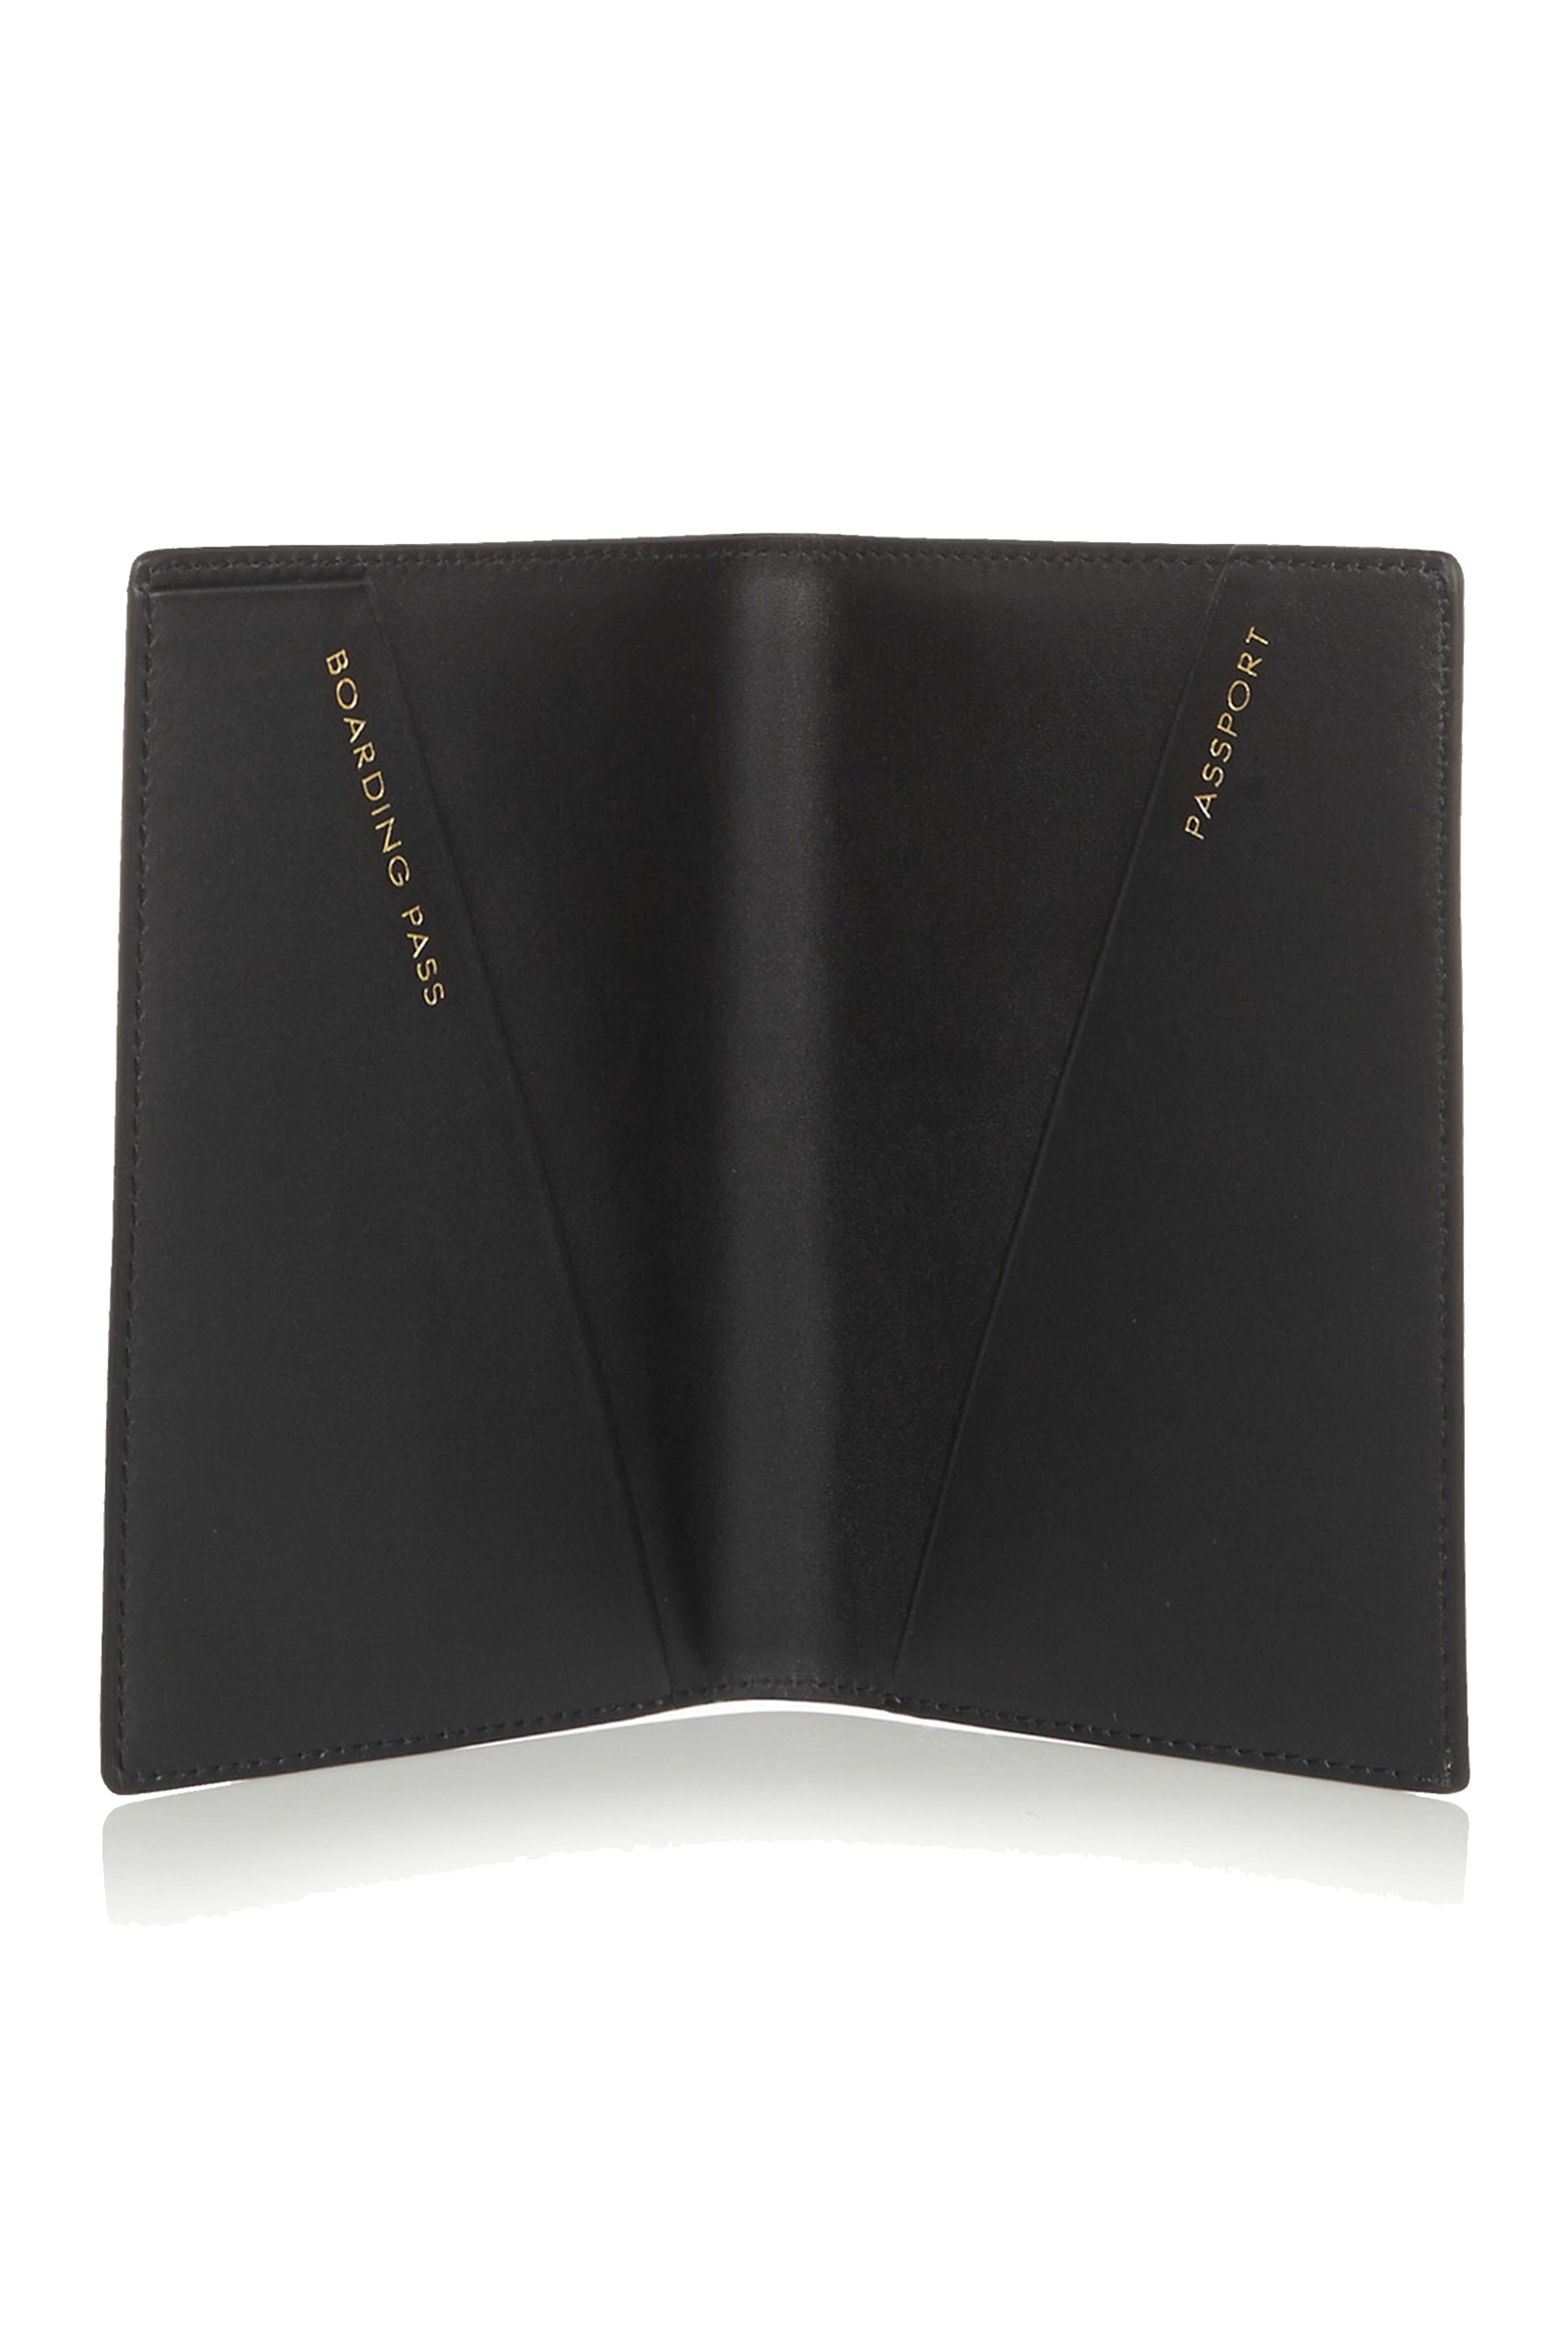 click to buy Smythson passport holder